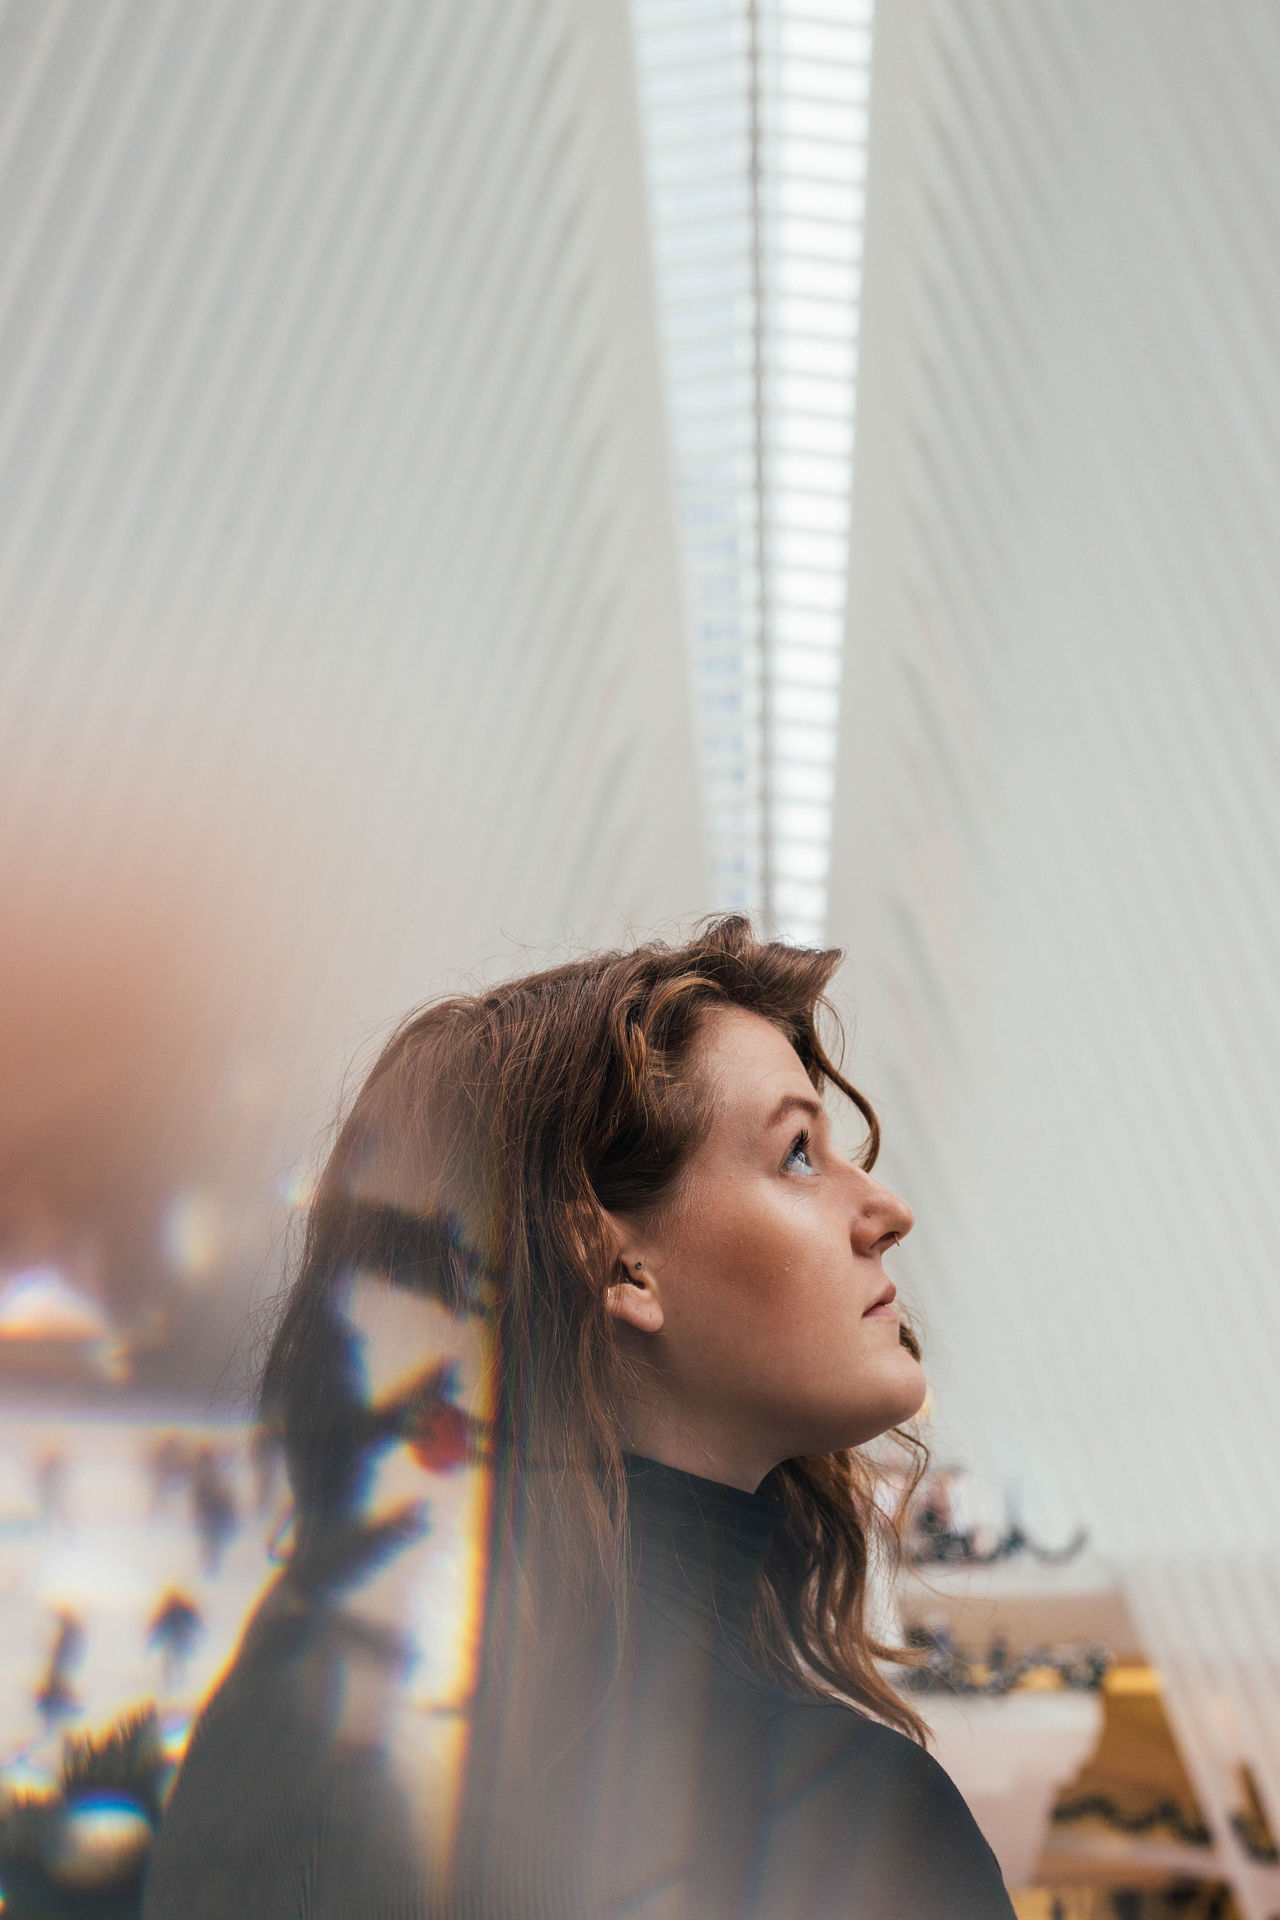 Close-up of thoughtful young woman with long brown hair against ceiling